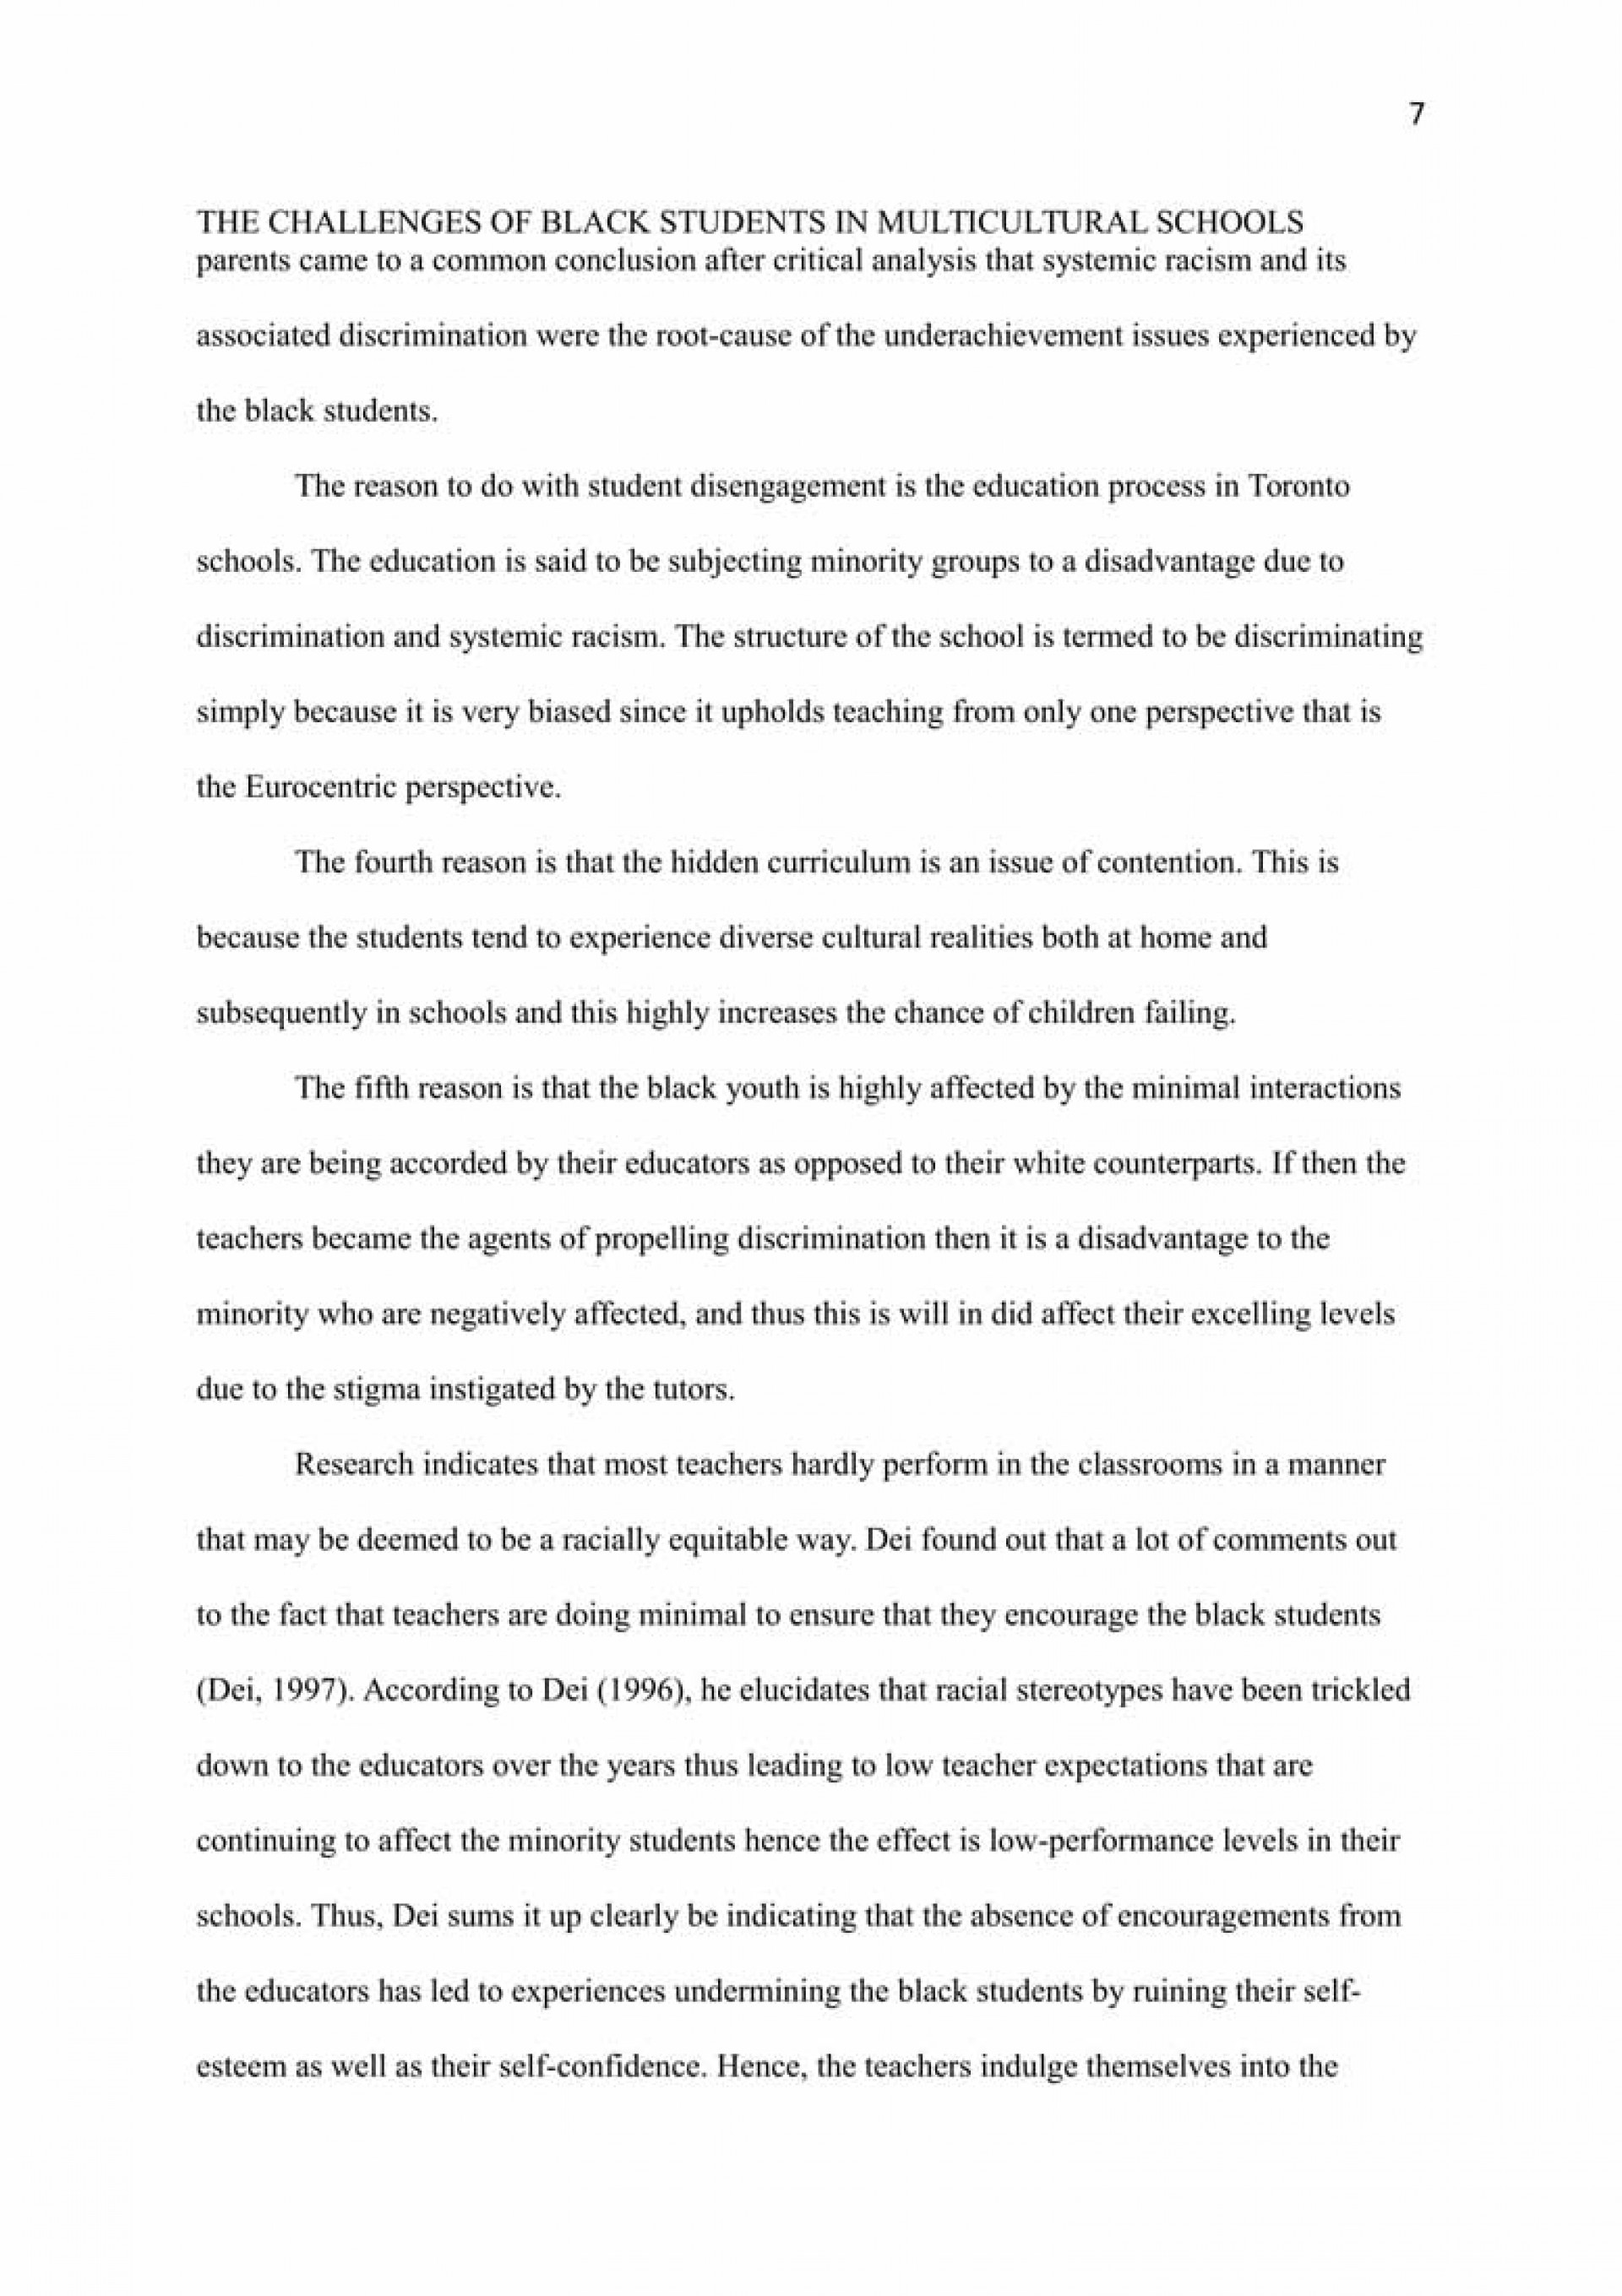 006 critical essay definition example how to write ham great good